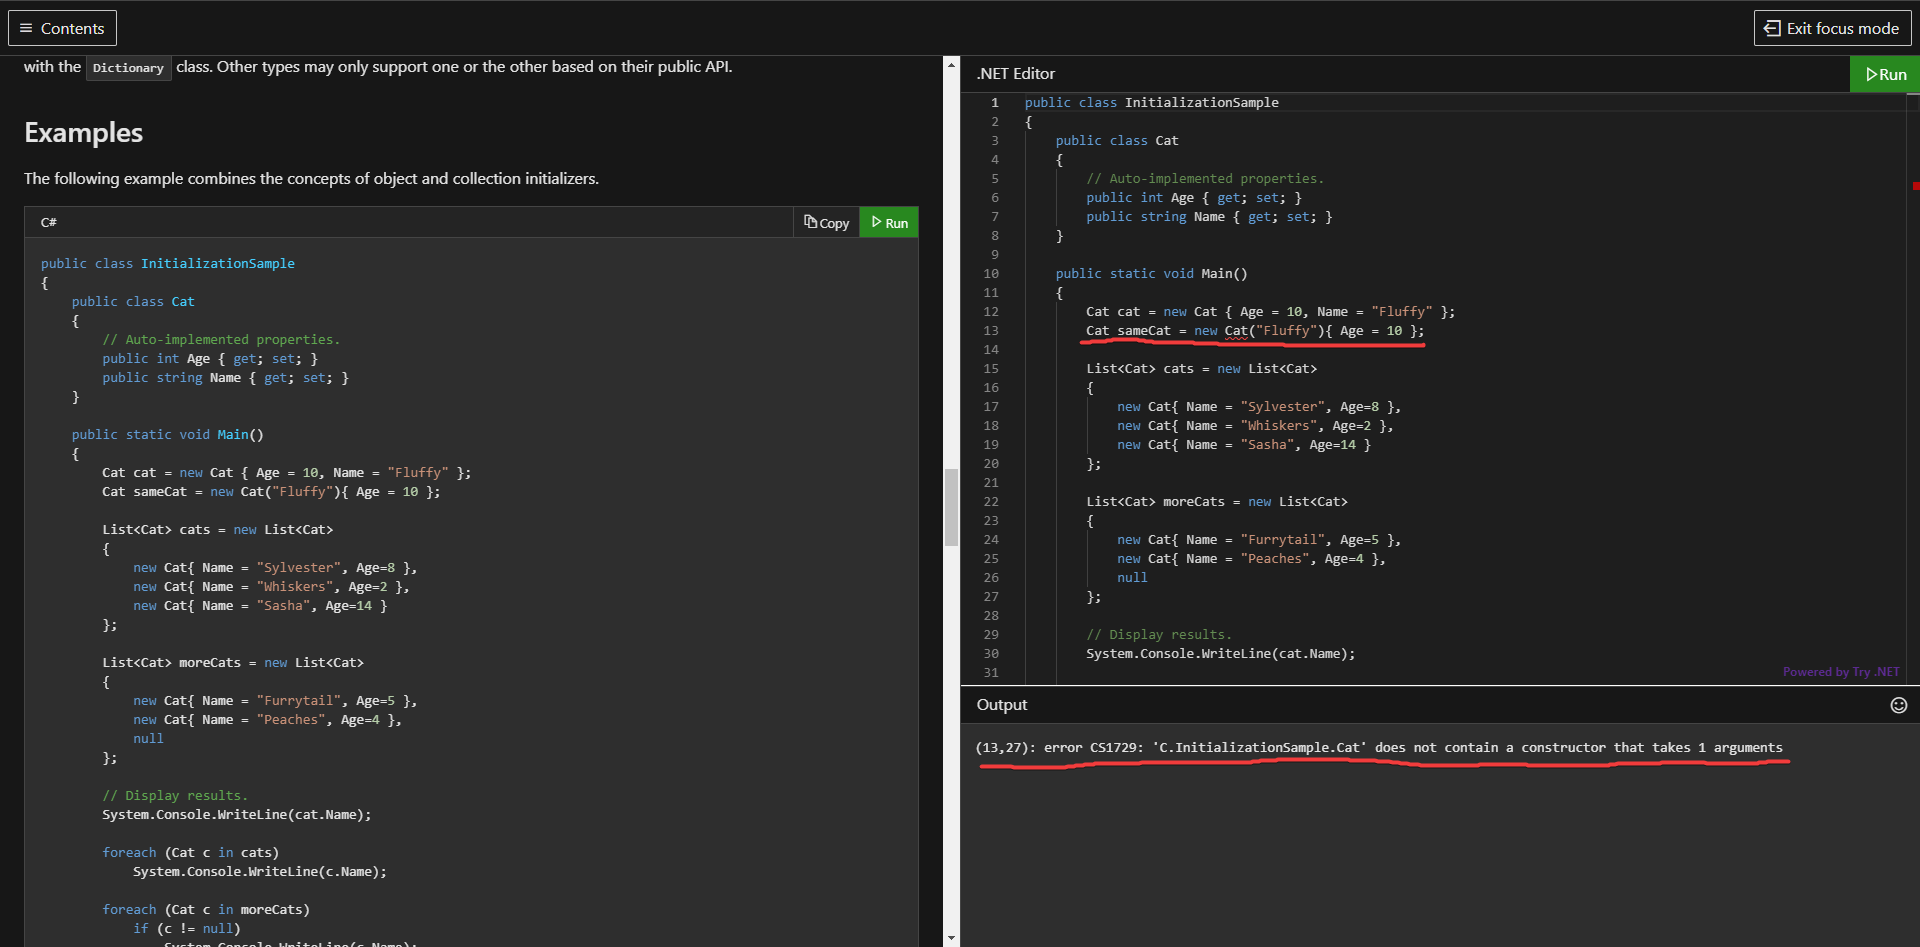 Running the InitializationSample code snippet on the